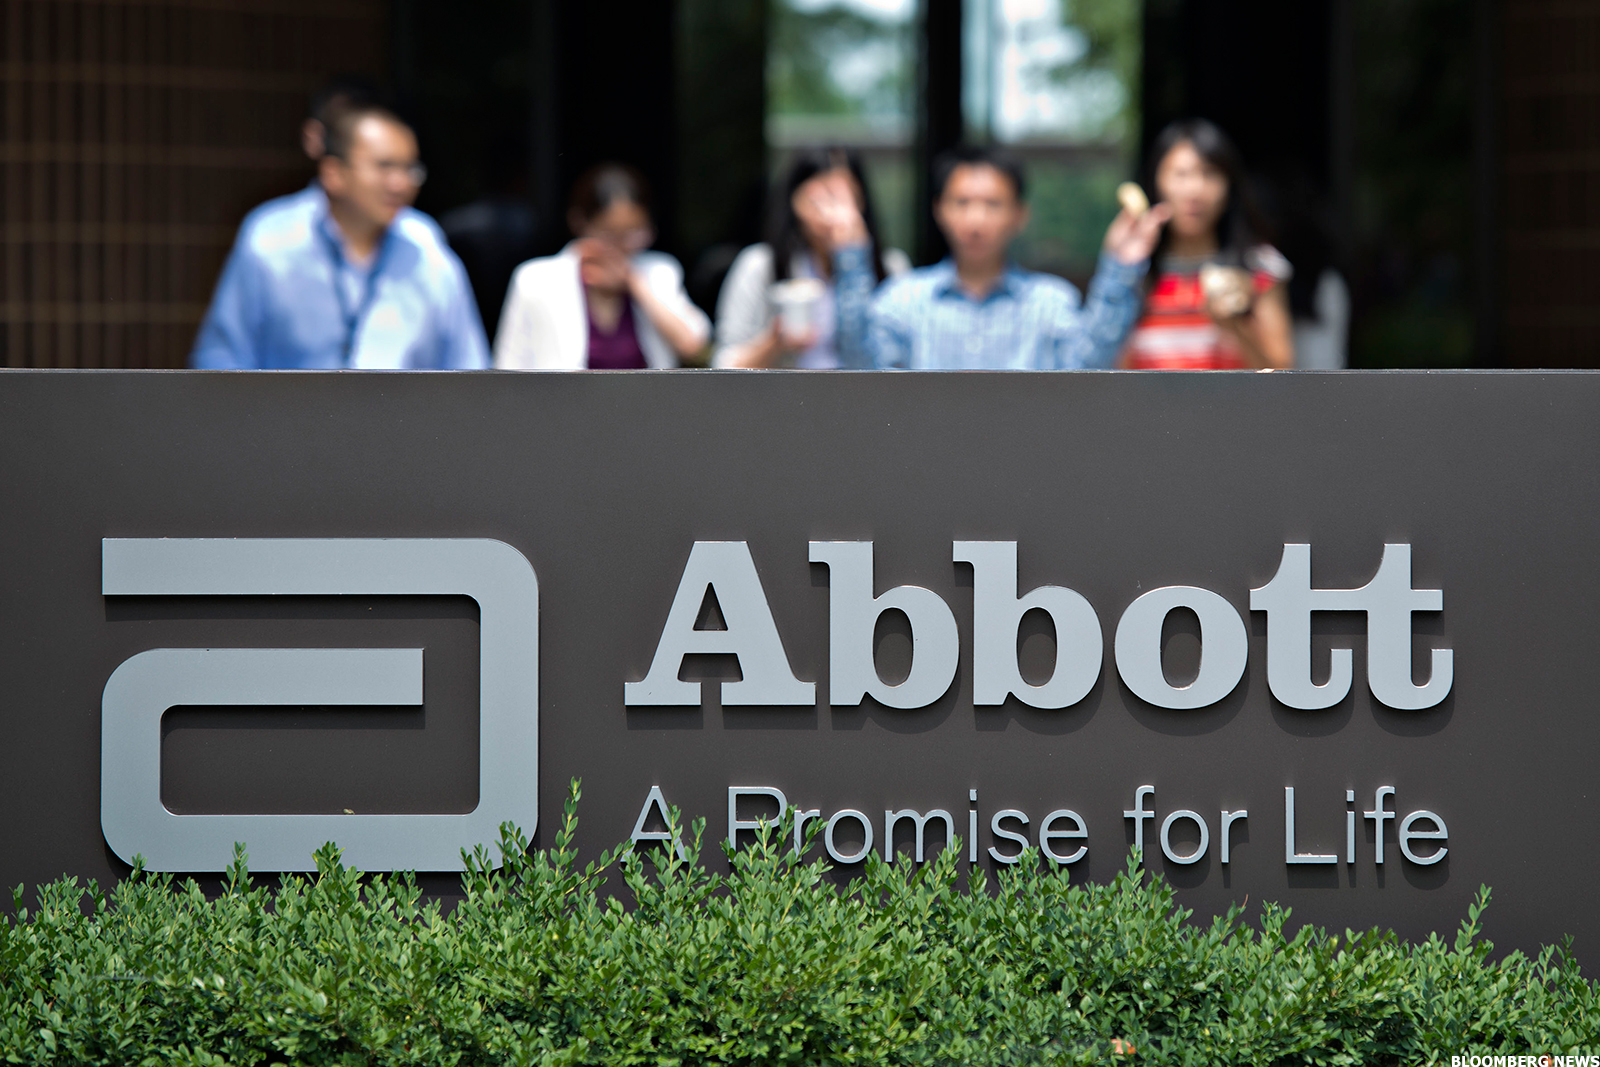 Abbott CEO Is Unfazed by Muddy Waters' Attack on St. Jude - TheStreet